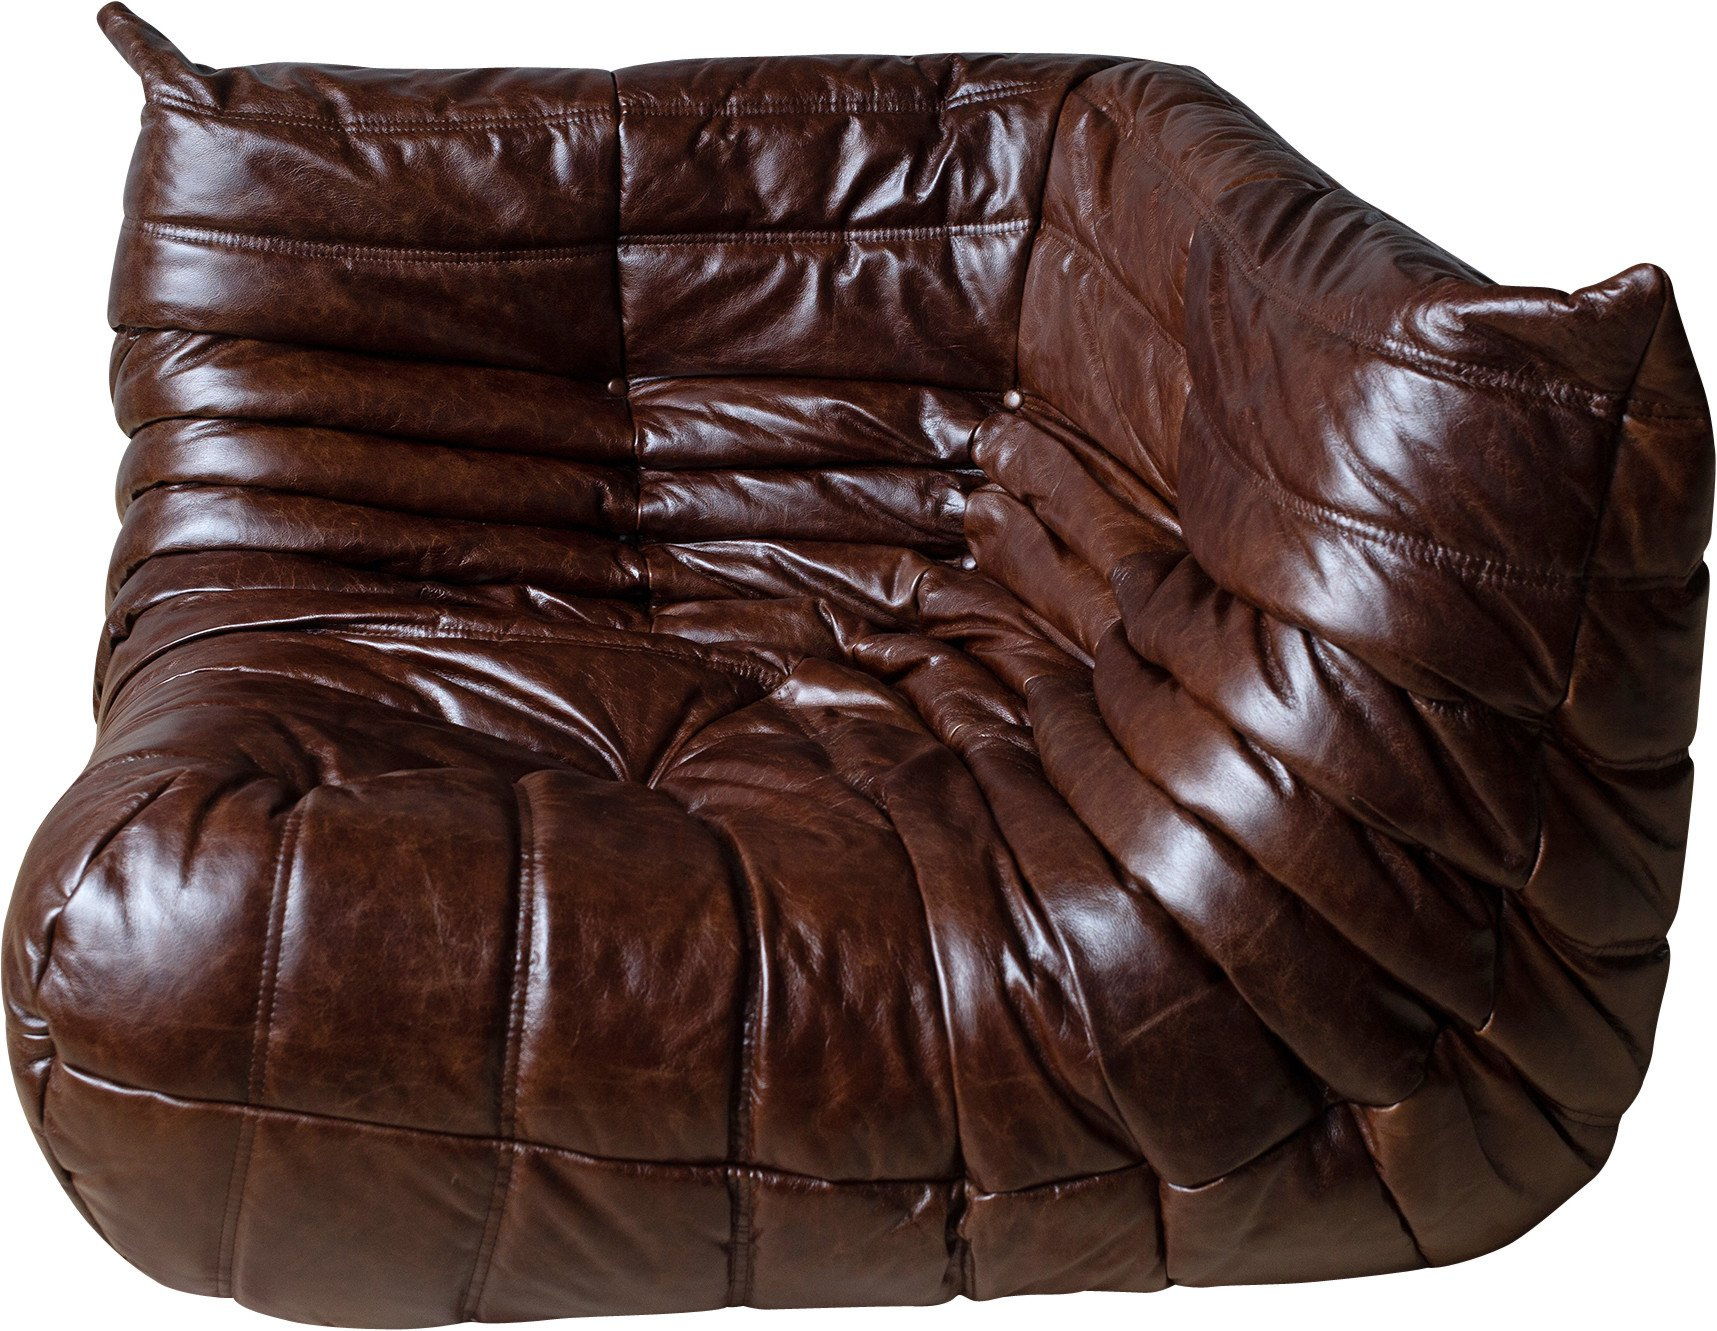 Togo Corner Couch in Madras Brown Leather by M. Ducaroy, Ligne Roset, France, 1970s